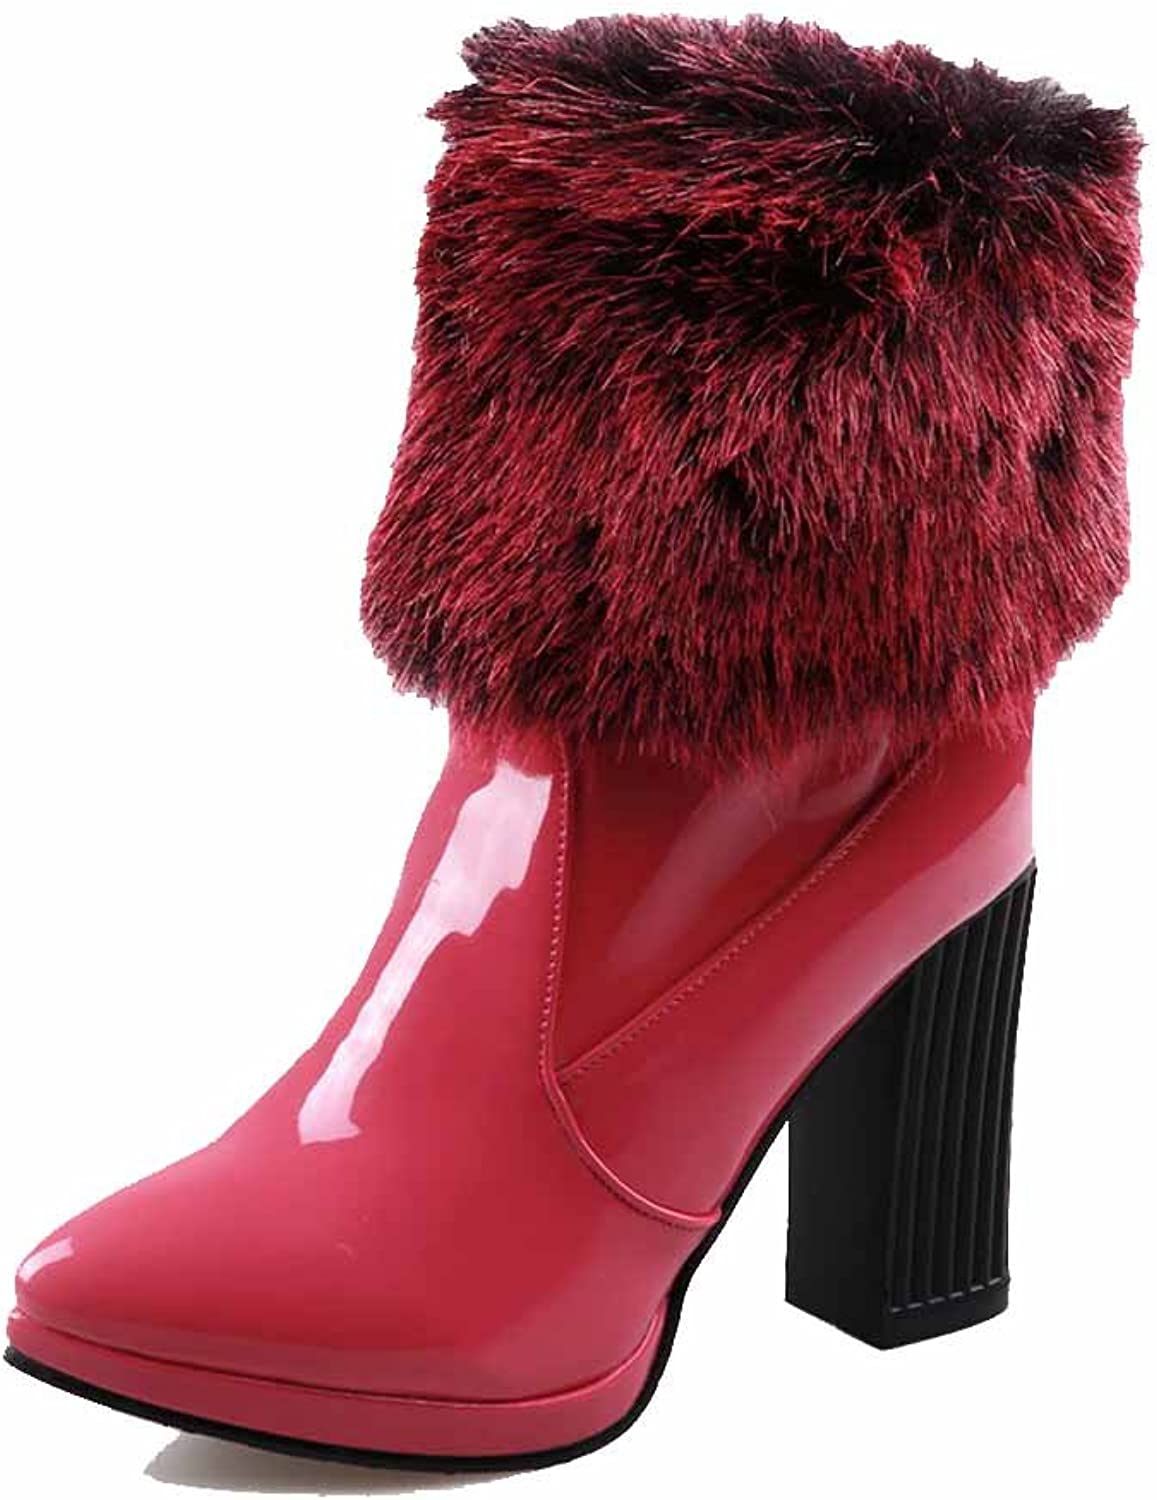 WeiPoot Women's High-Heels Solid Pointed Closed Toe Patent Leather Pull-on Boots